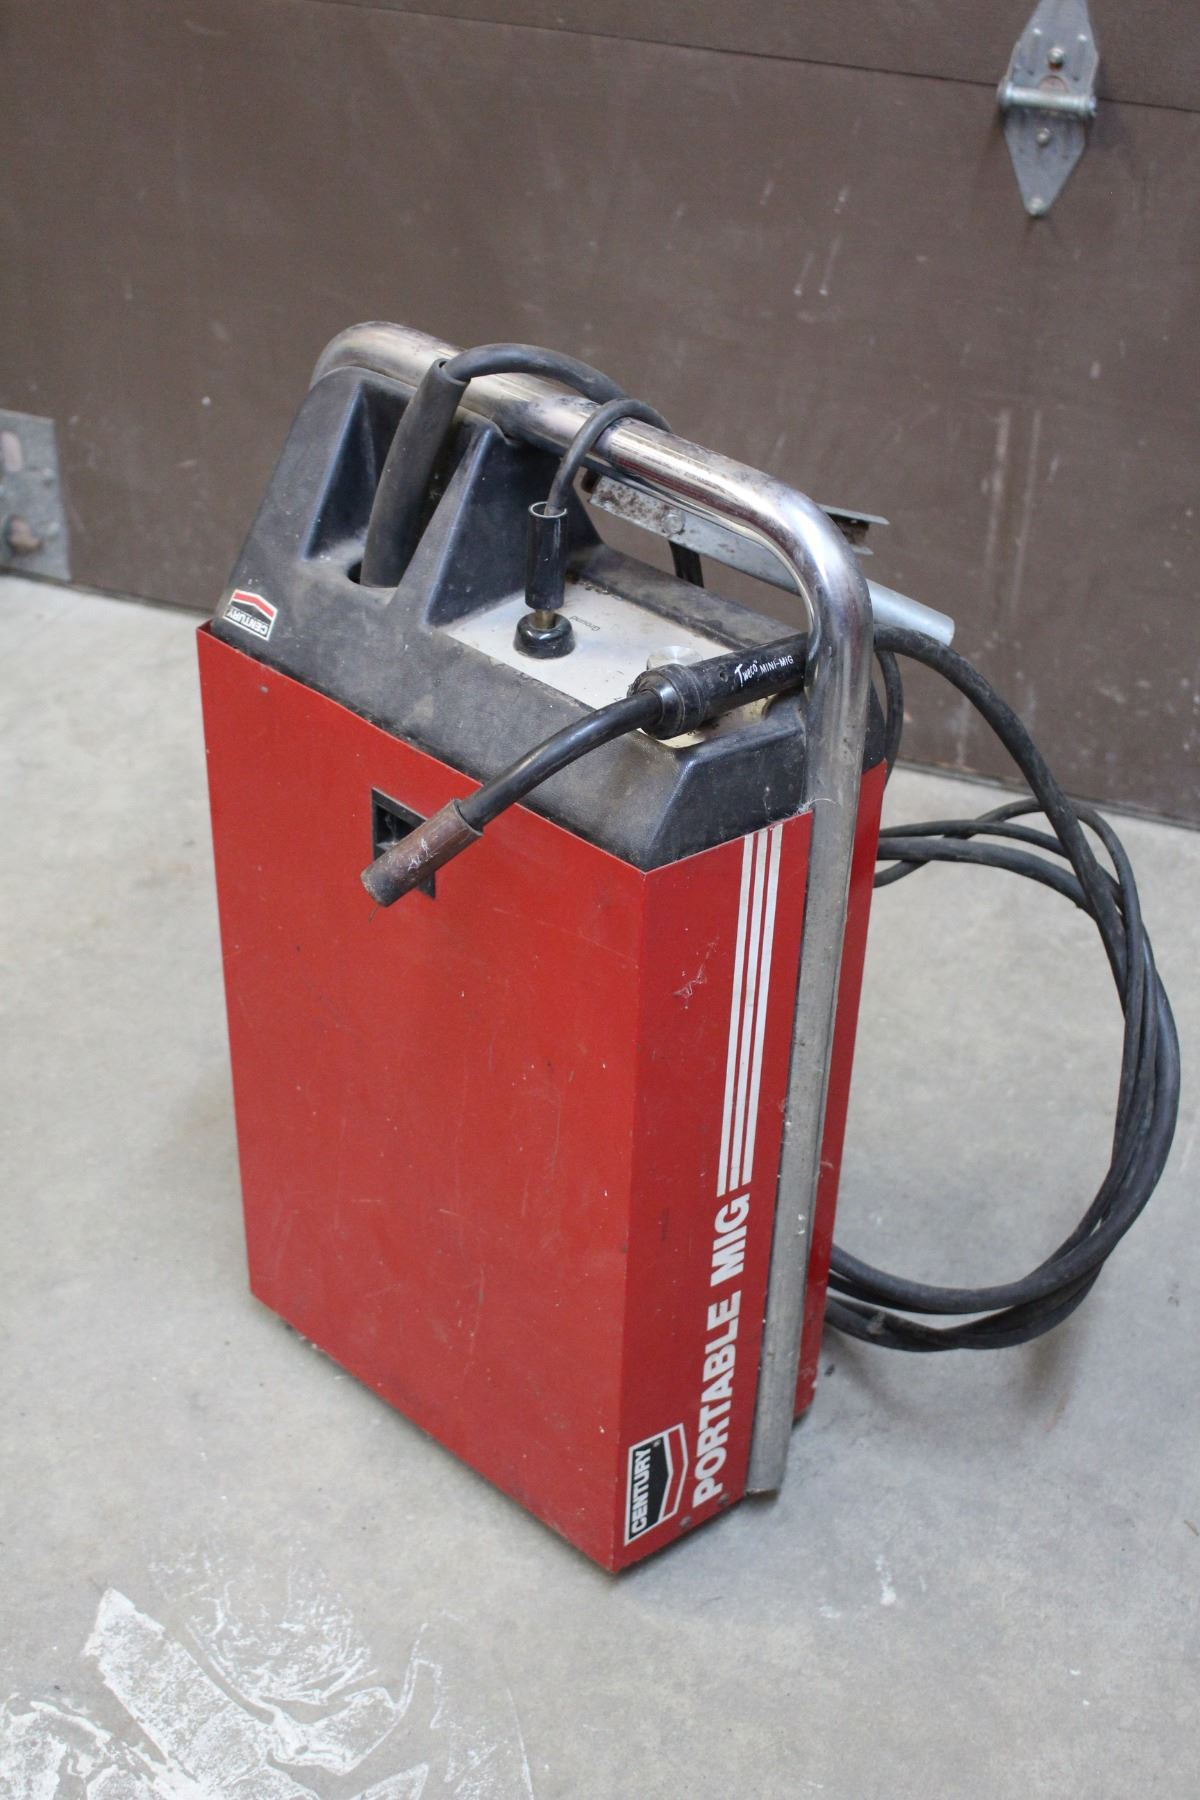 century portable mig wire feed welder with manual and lots of rh icollector com century 160 mig welder parts century 125gl mig welder manual